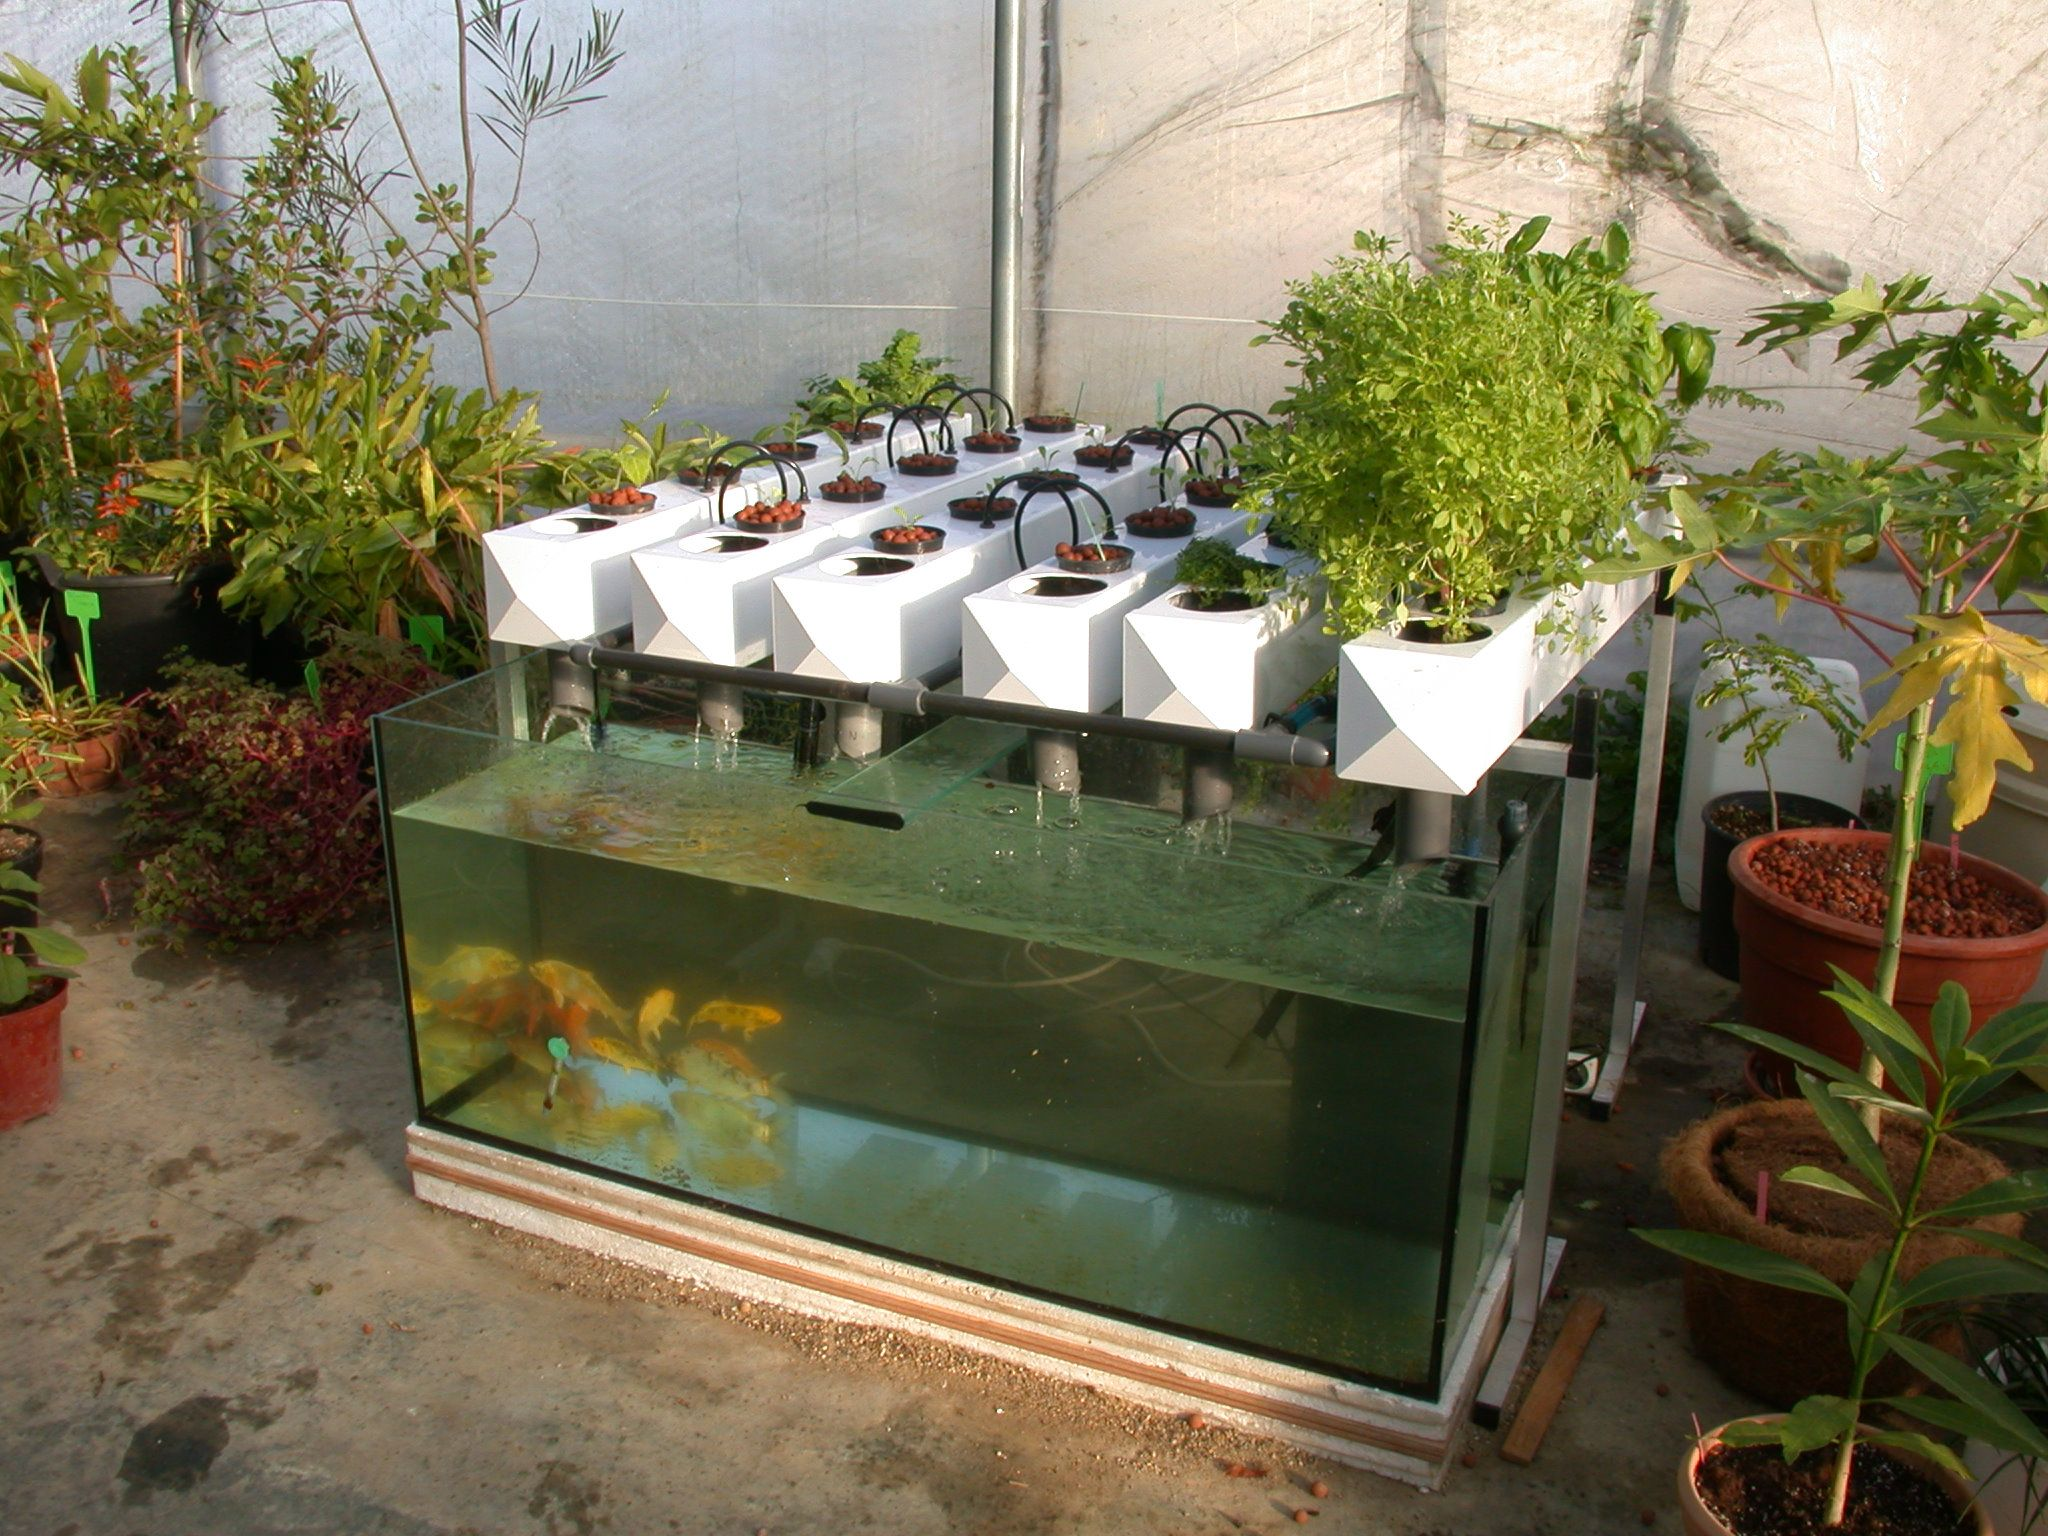 Aquaponics general hydroponics europe ghe official for Aquaponics fish for sale